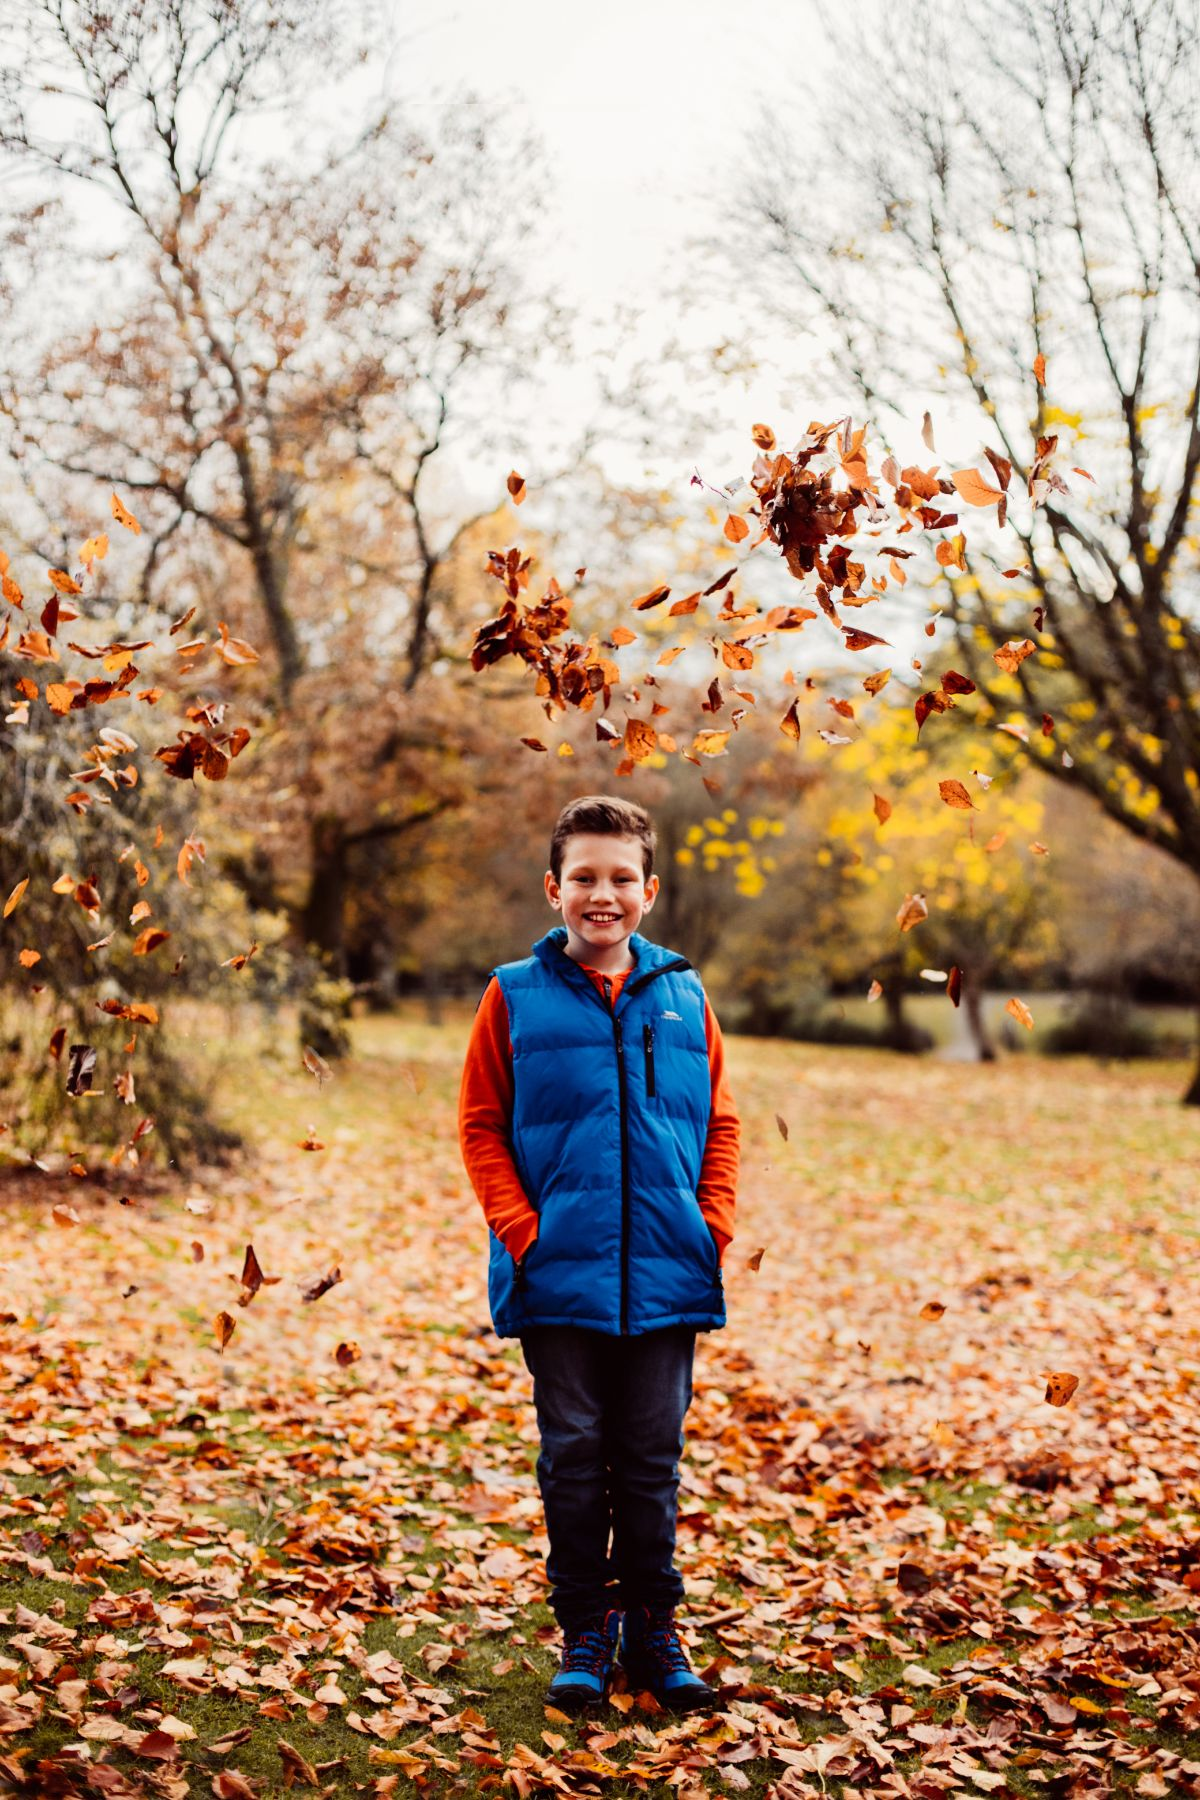 Colby | Autumn Portrait Photography in Shepton Mallet